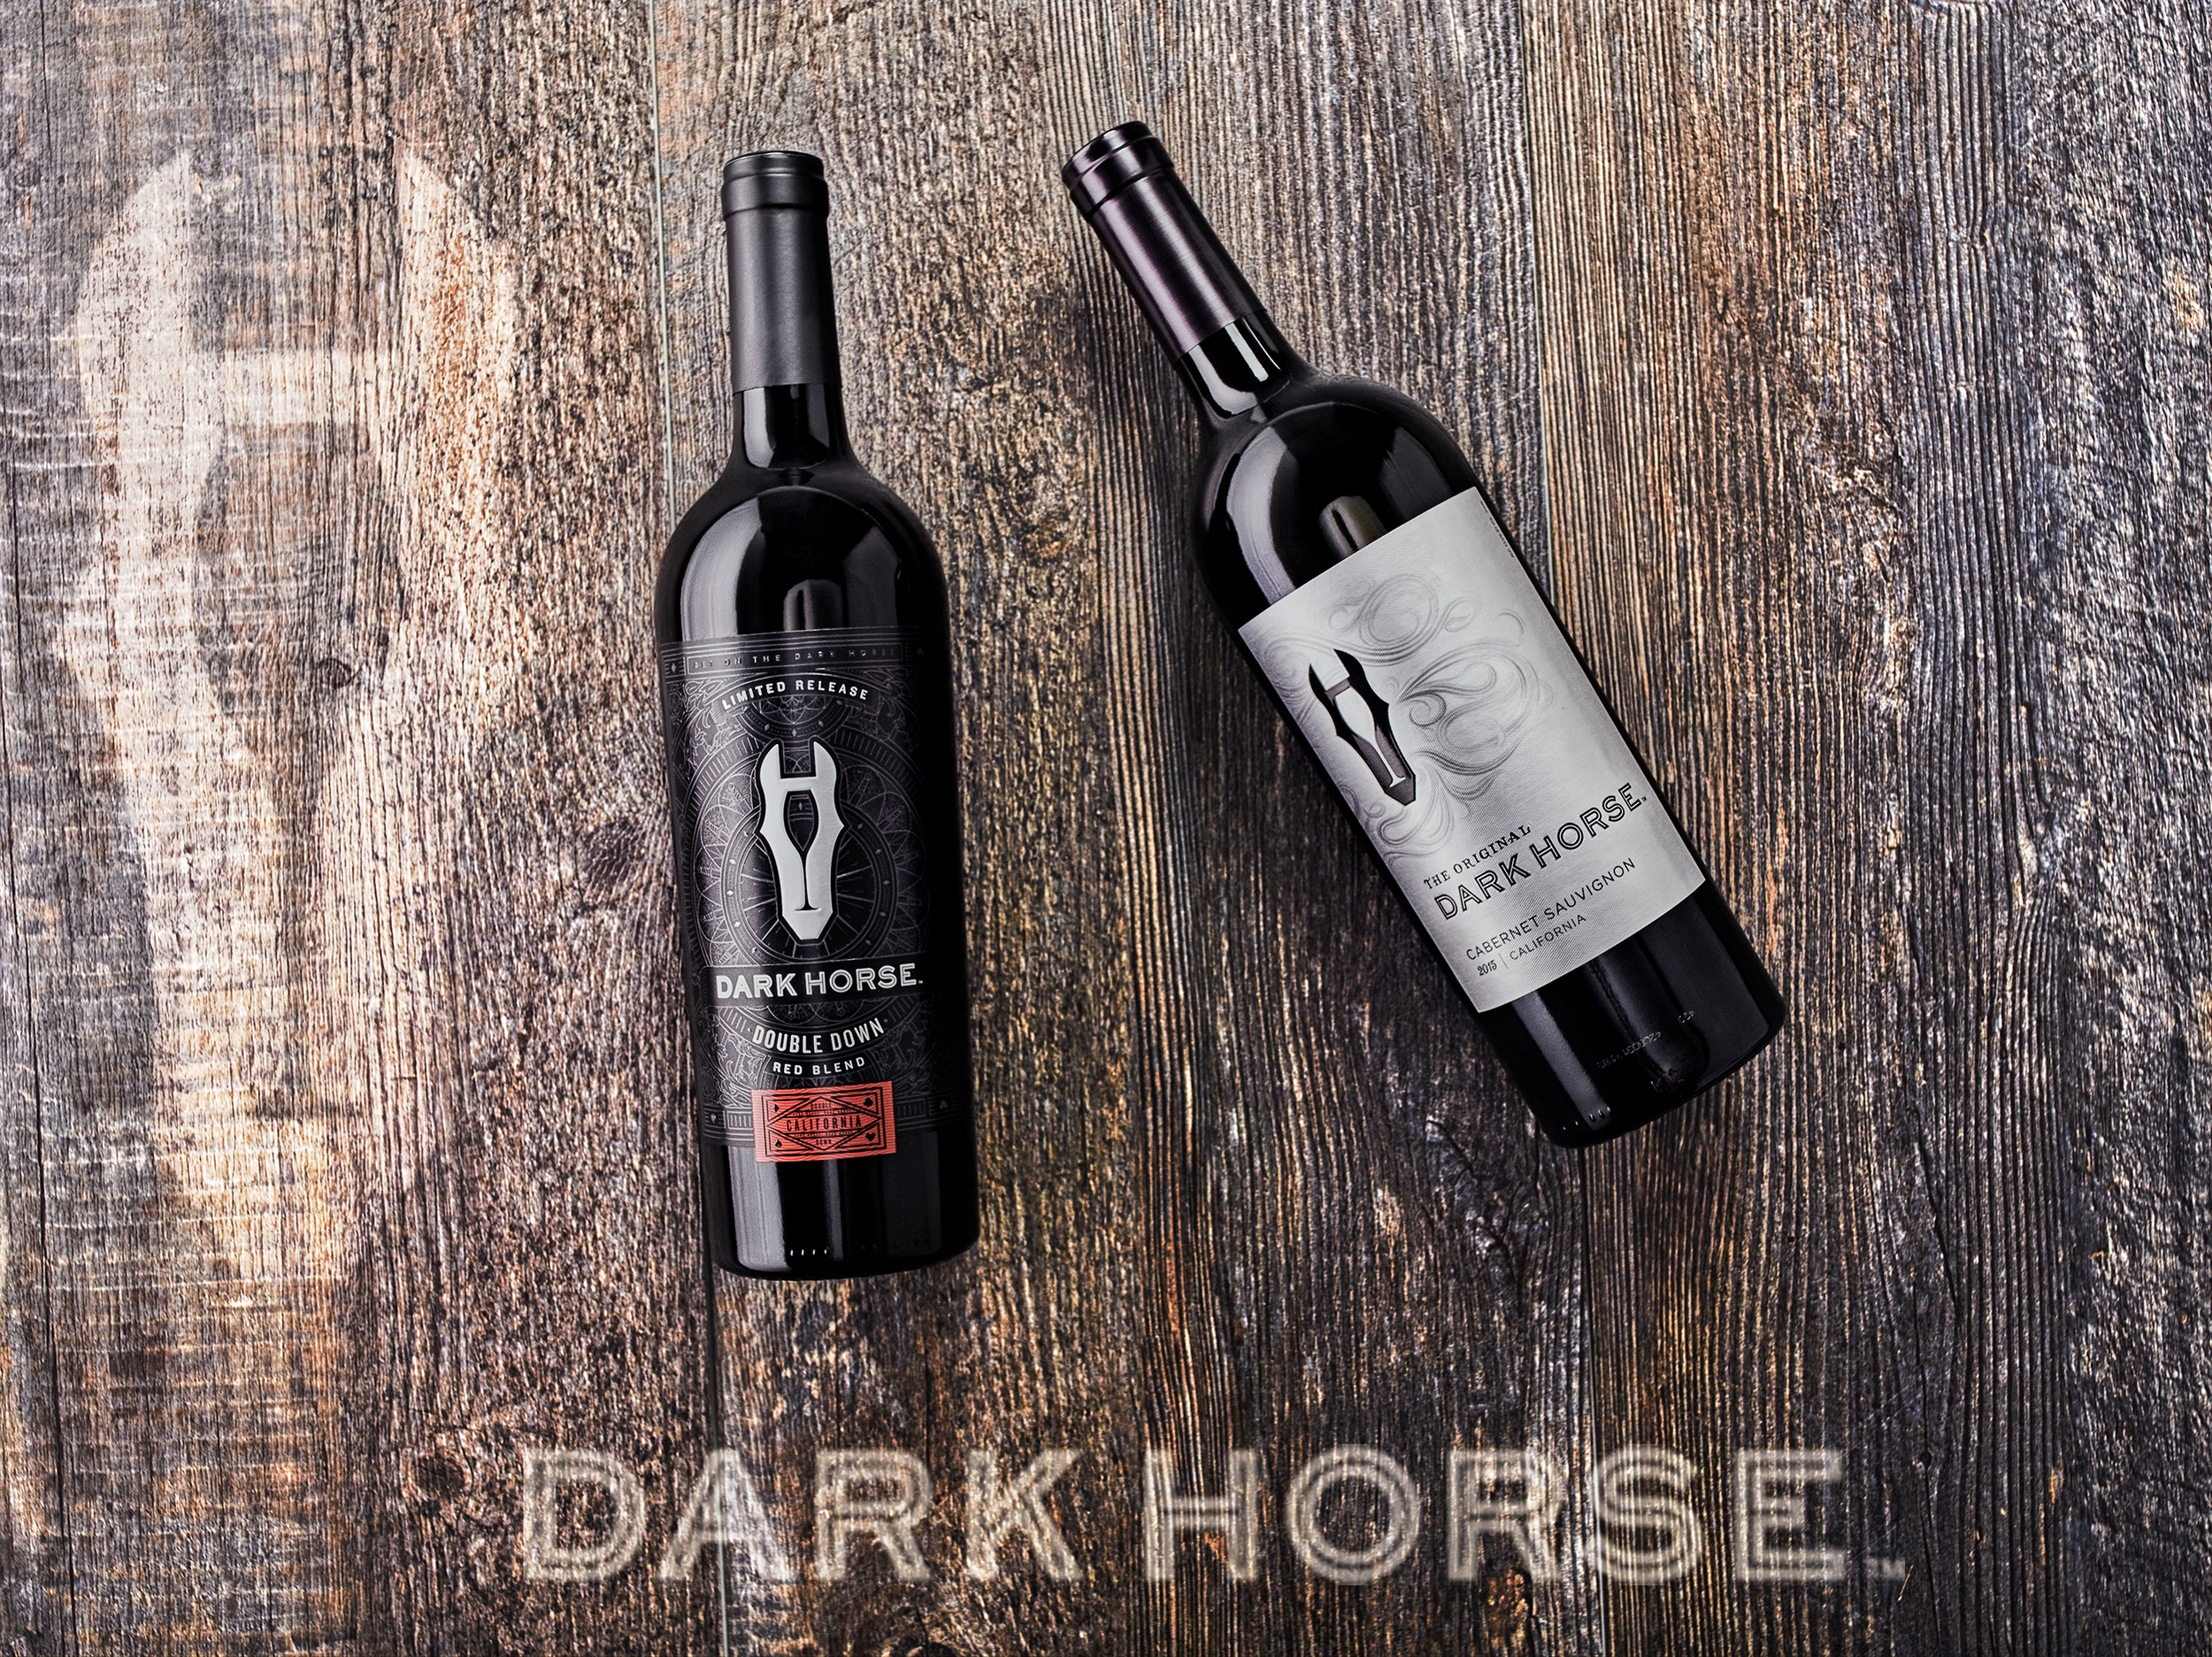 180220_DarkHorse_Wine20499_1